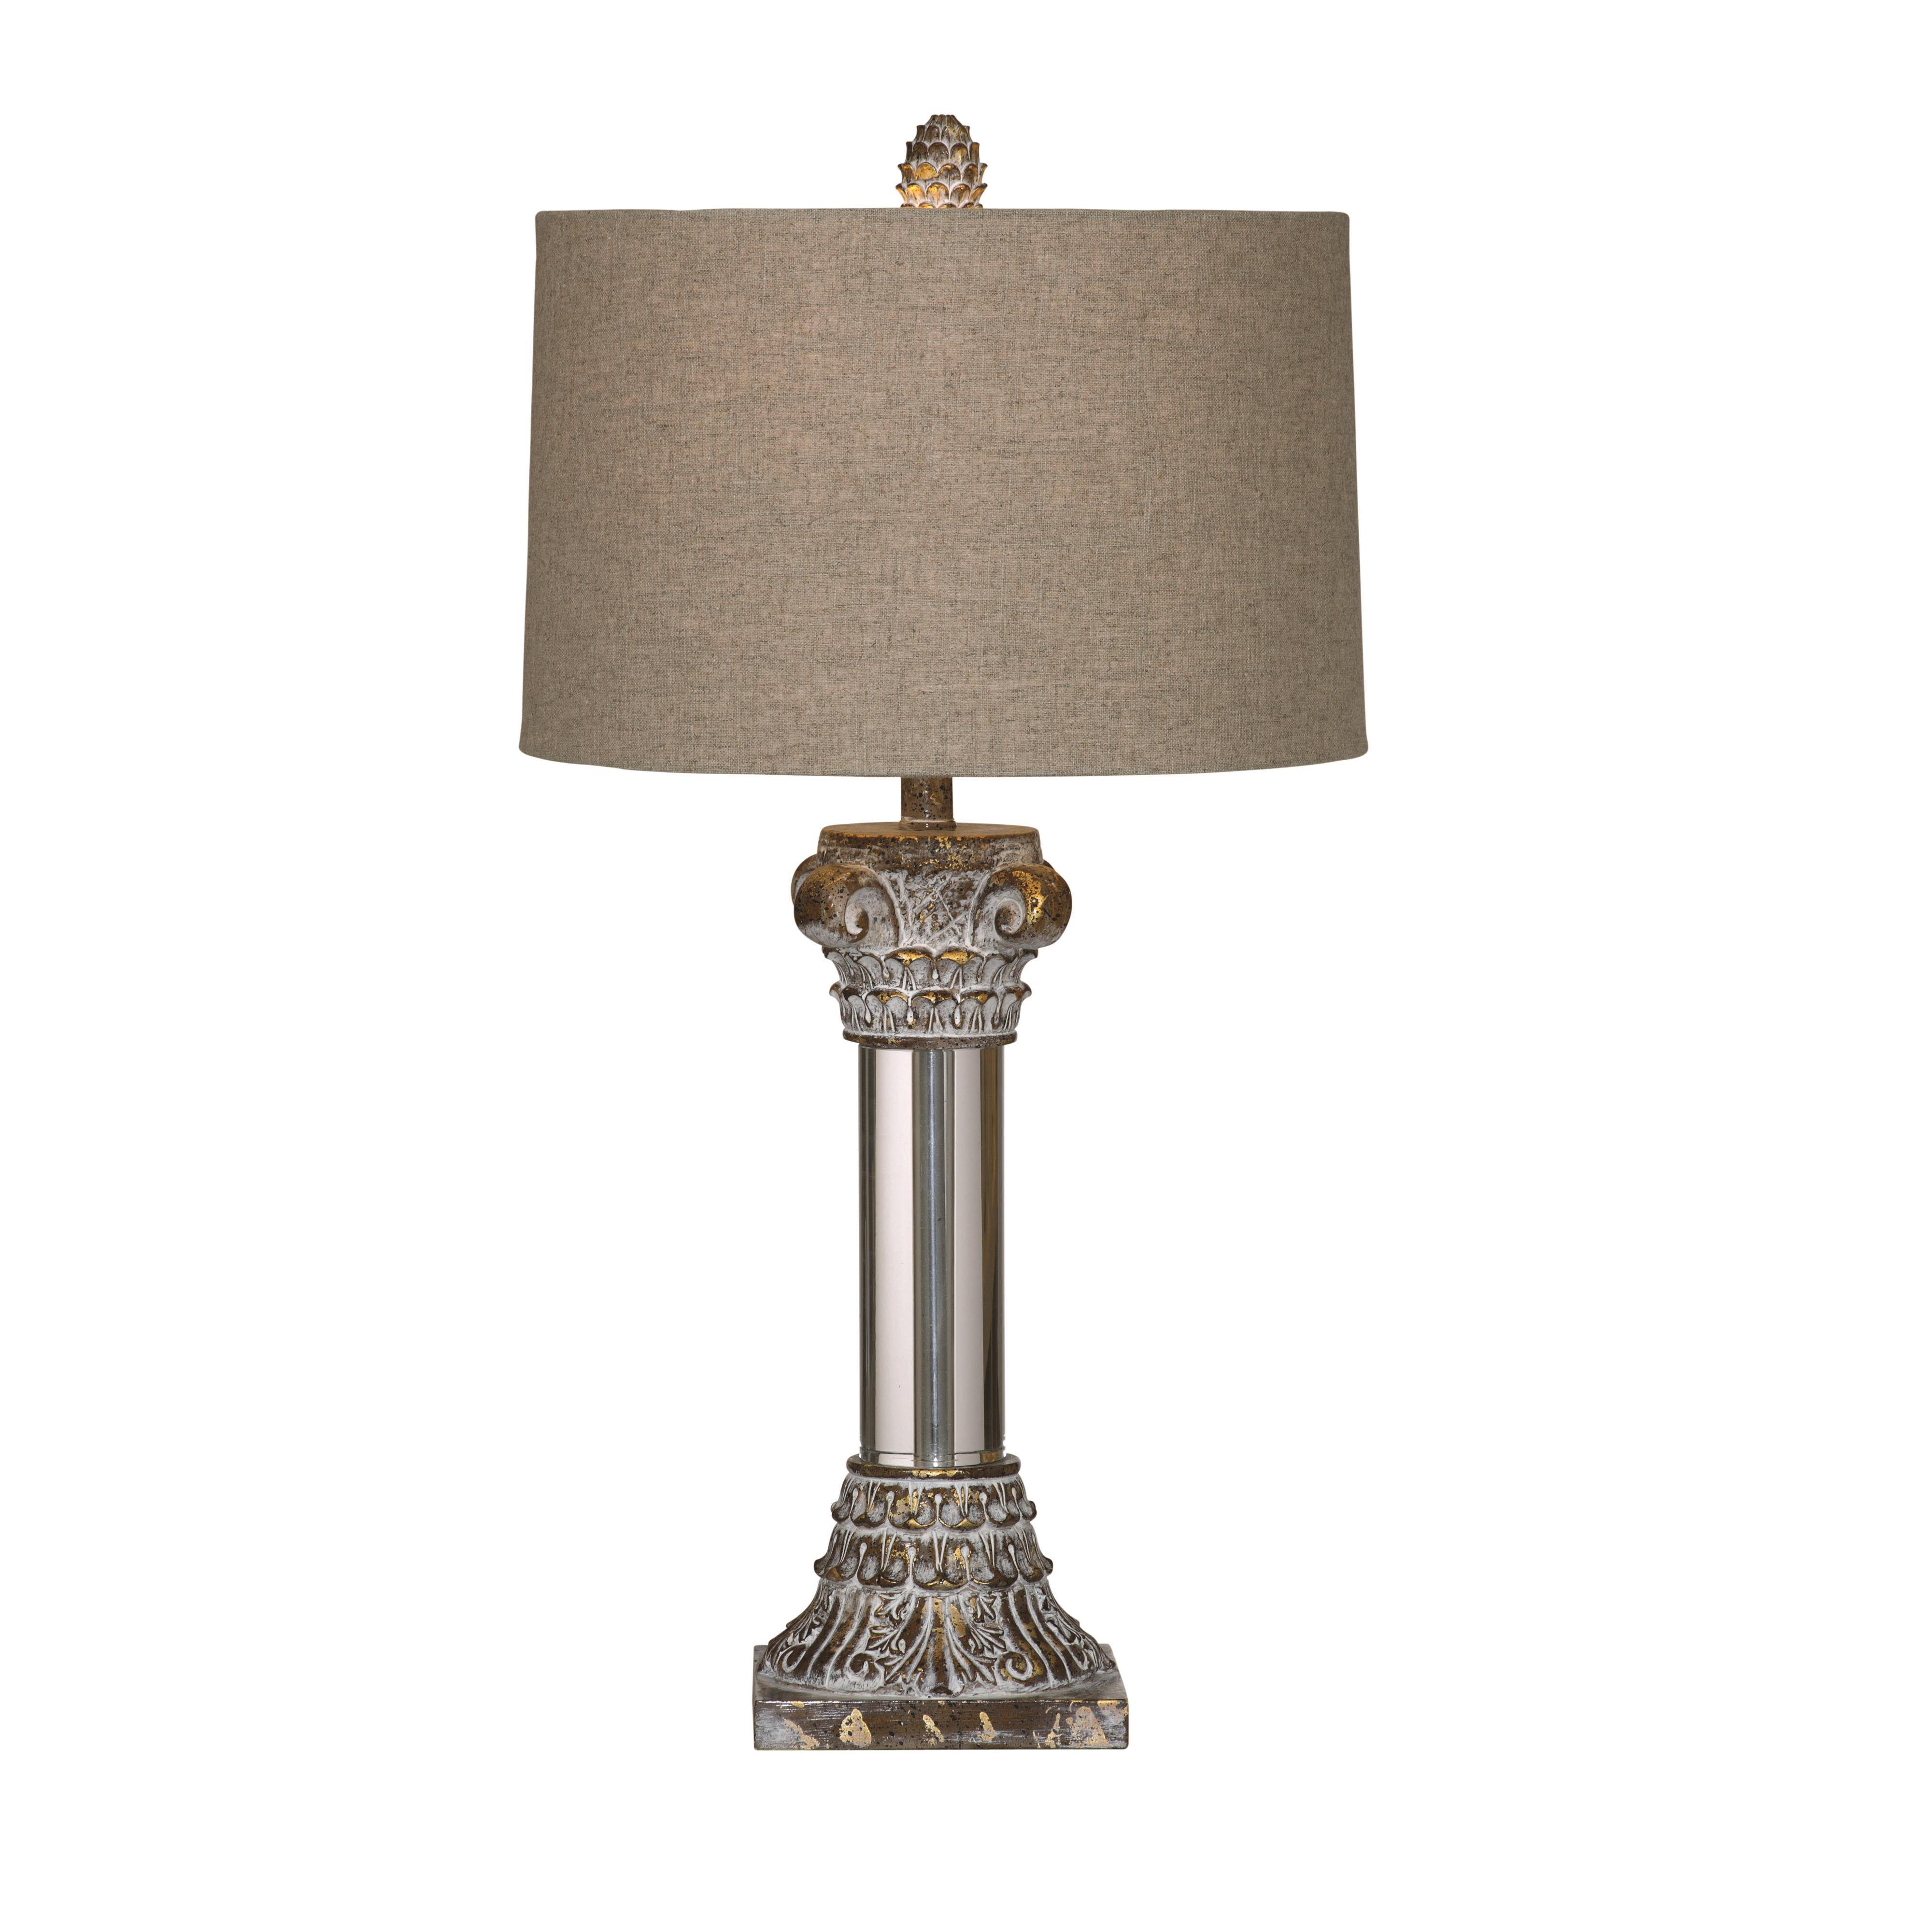 Old World Corinth Table Lamp by Bassett Mirror at Alison Craig Home Furnishings